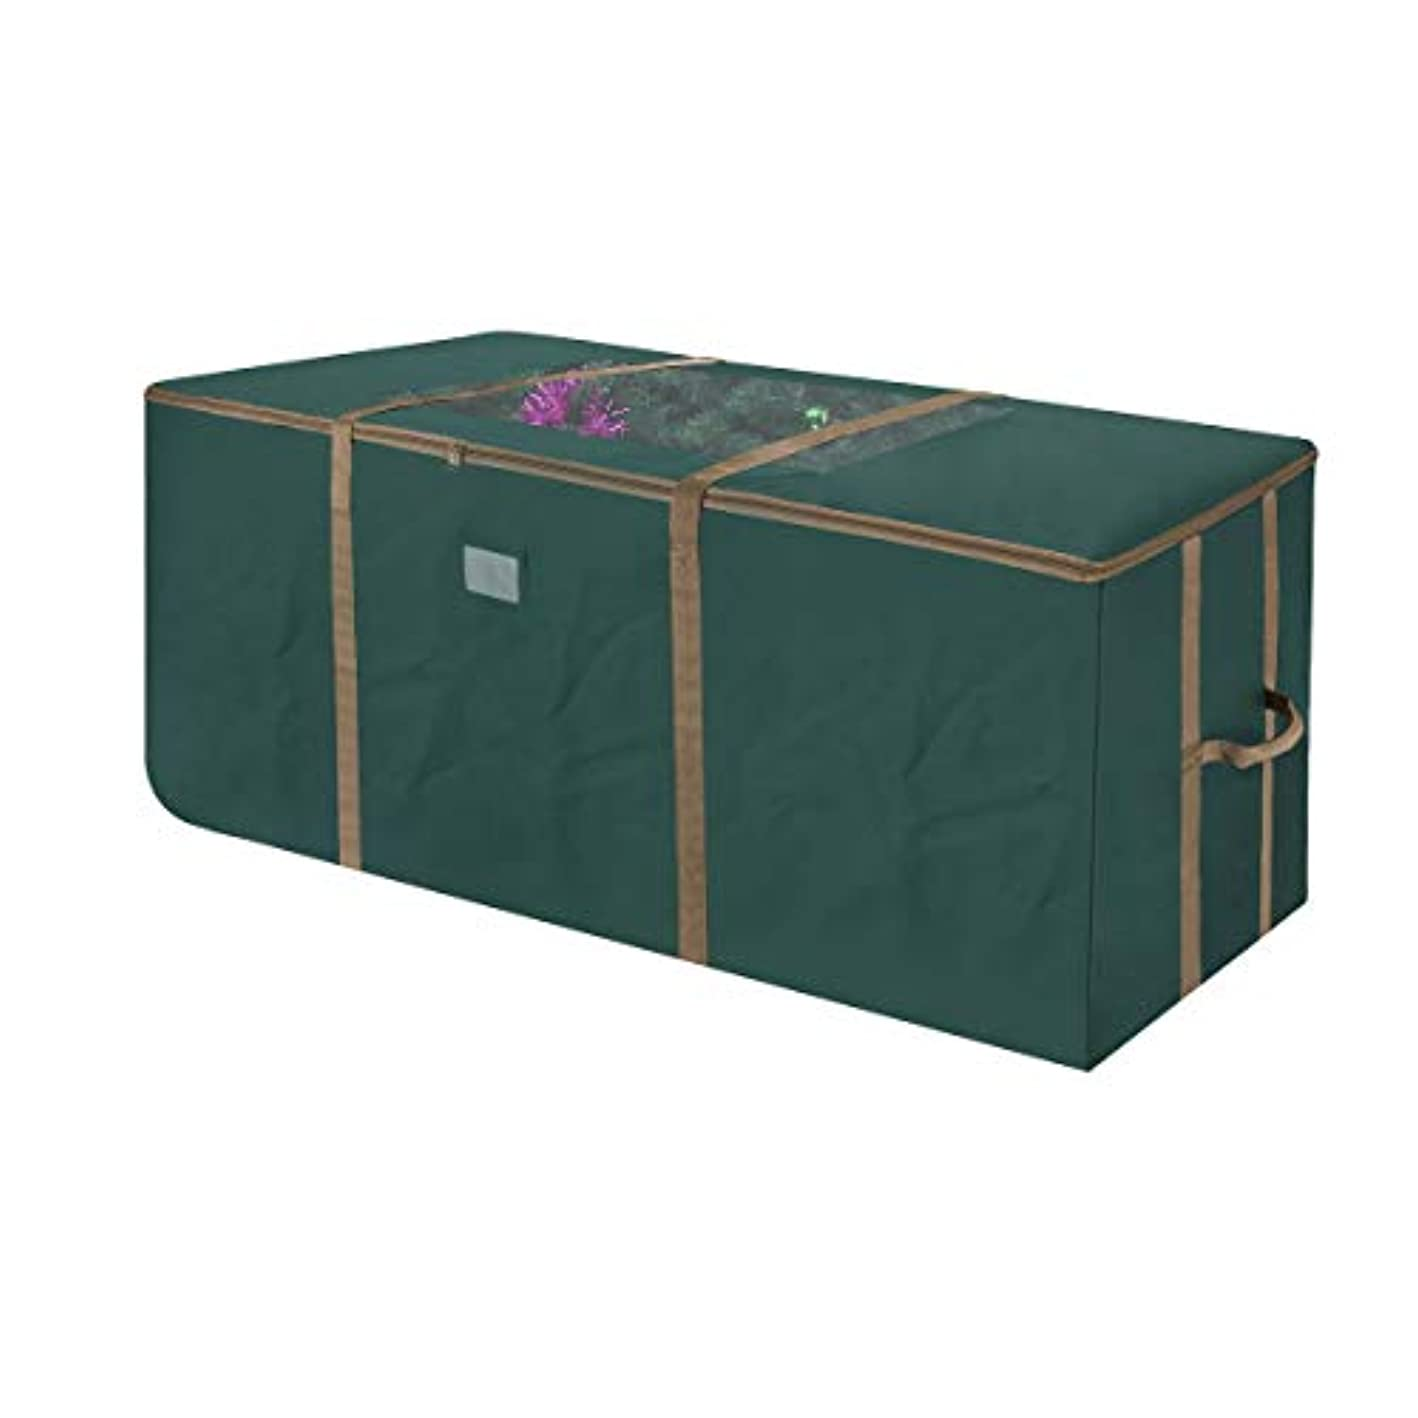 Elf Stor 83-DT5171 Rolling Duffel Style Christmas Storage Bag with Window for 12 Foot Tree   Green